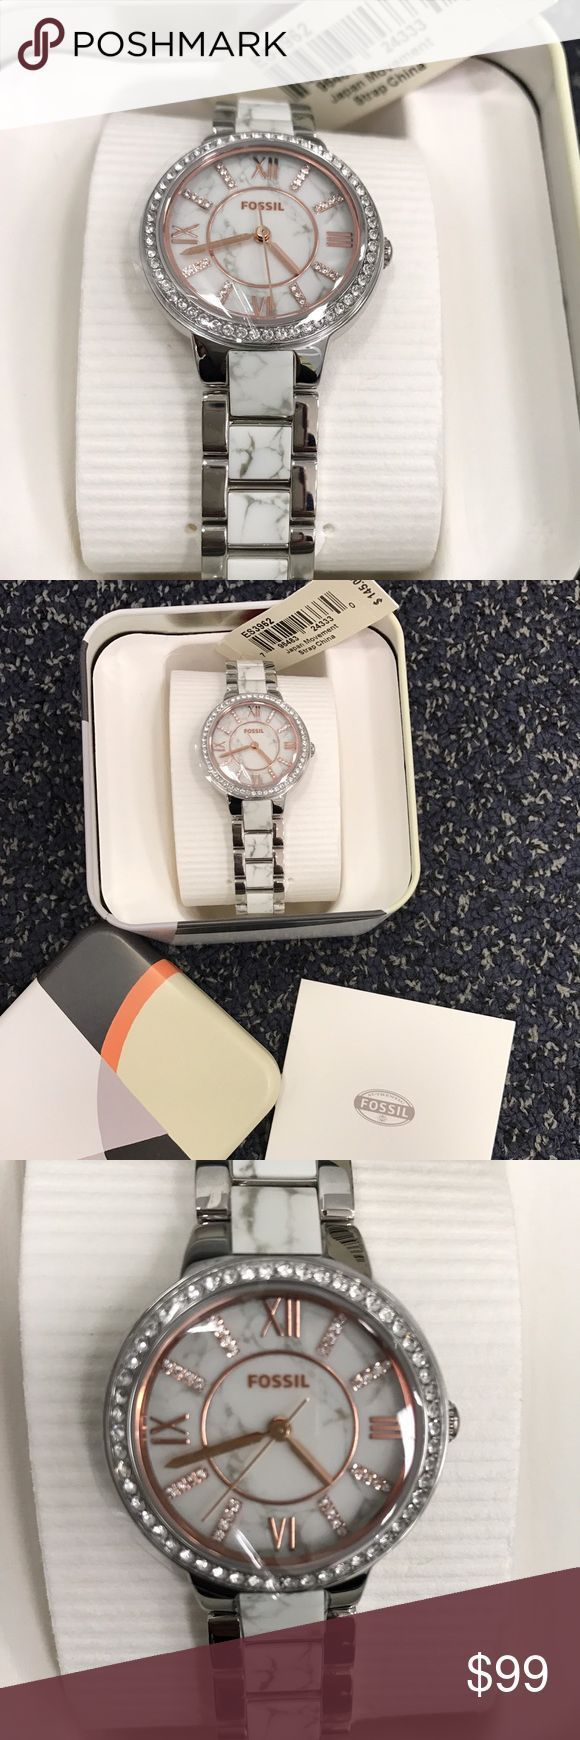 Montre pour femme : SOLD OUT  Brand new Fossil marble bracelet watch Fossil ES3962 Virginia Women